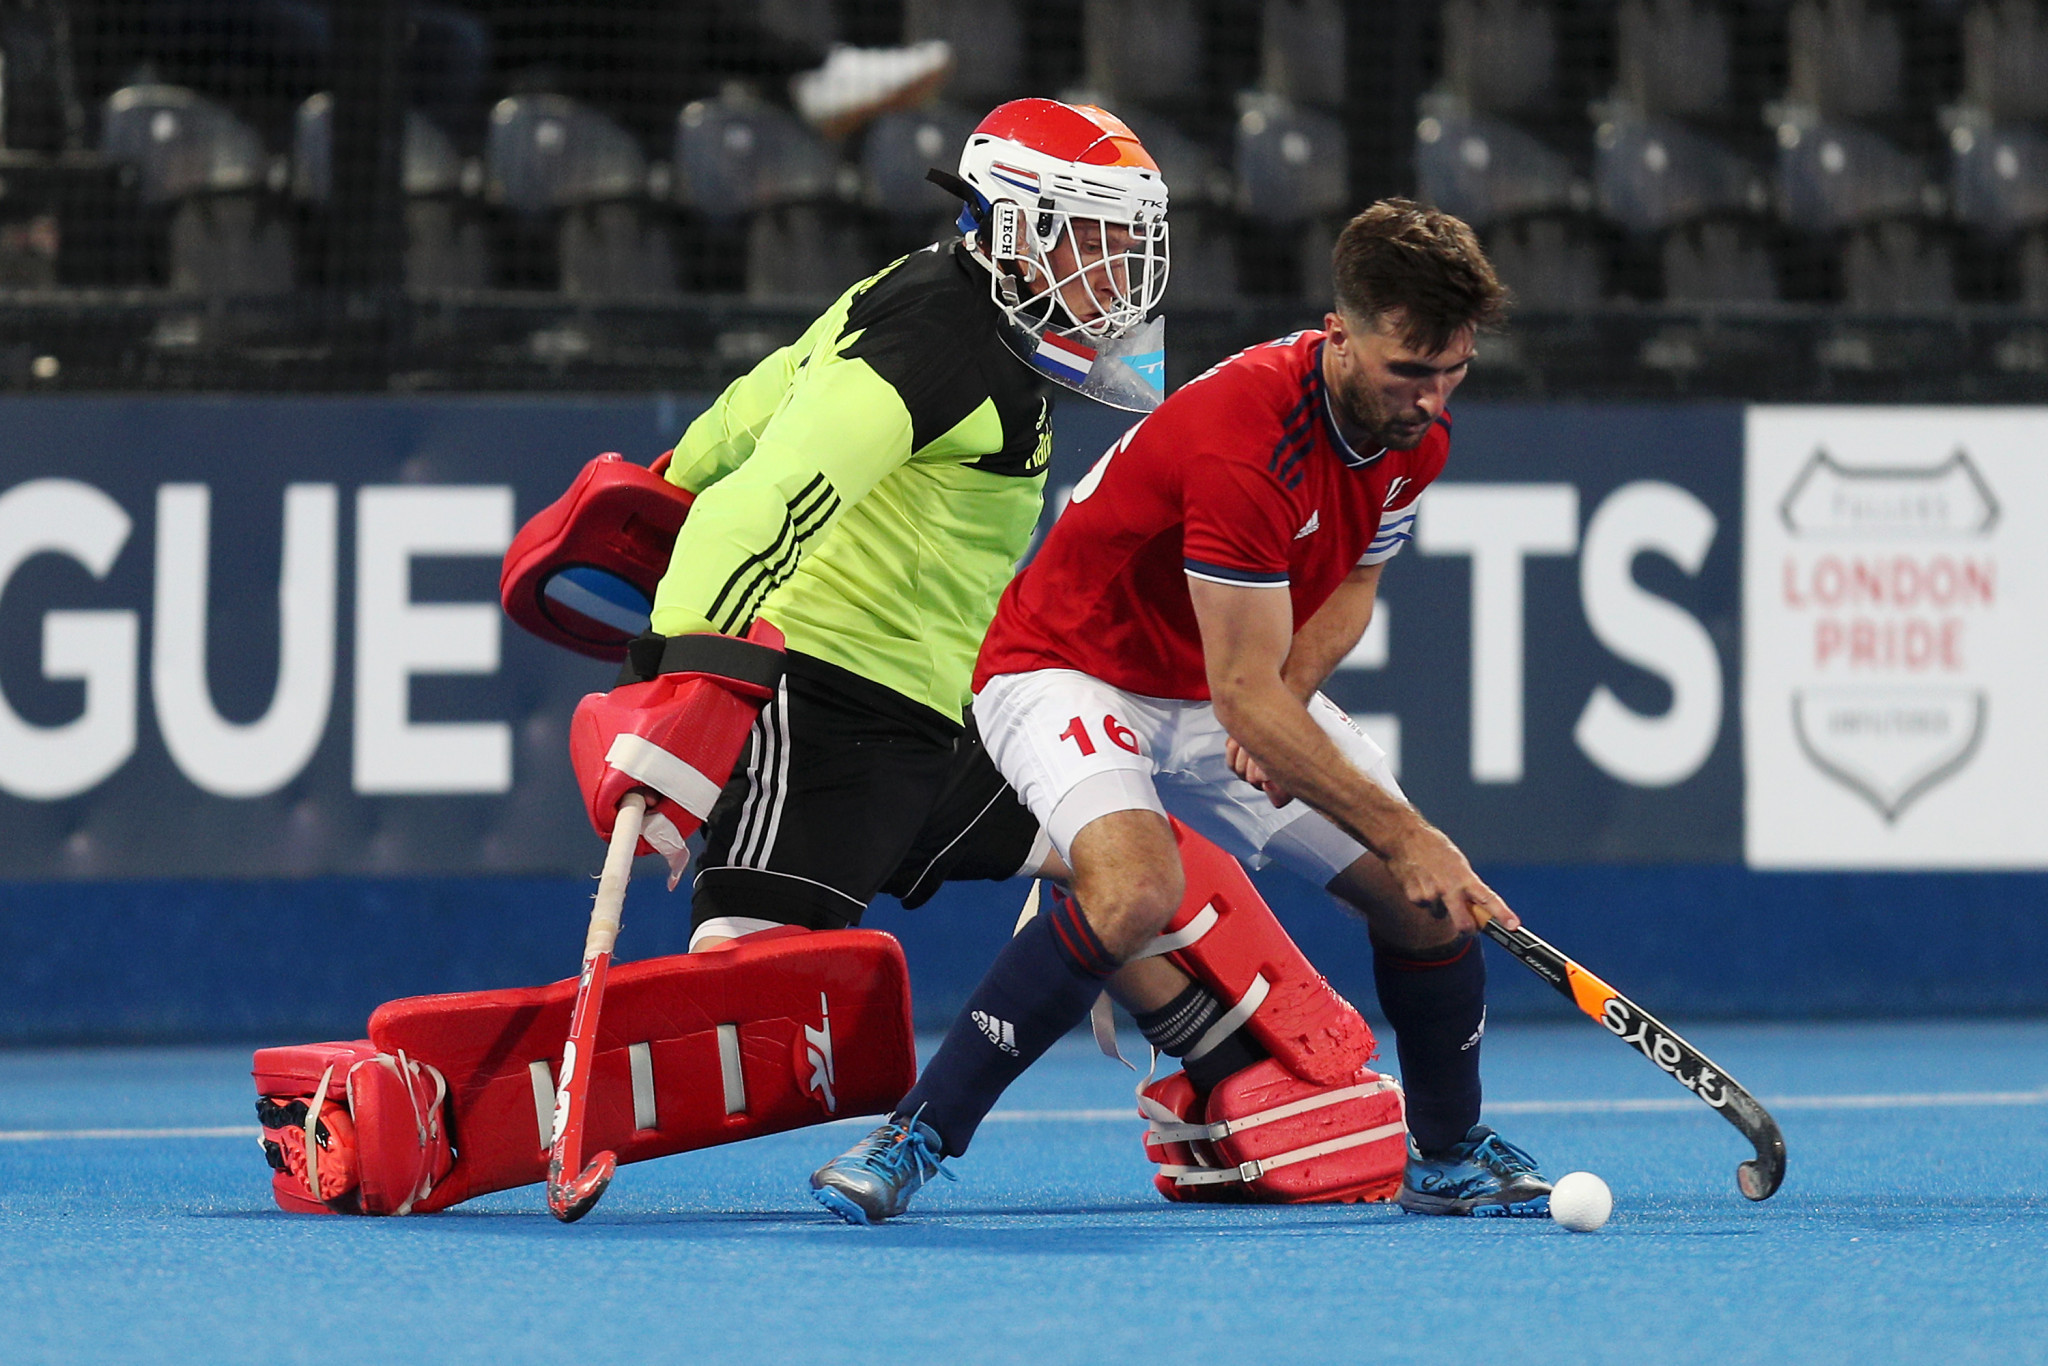 Netherlands beat Britain in shootout to move step closer to qualifying for FIH Pro League Grand Final